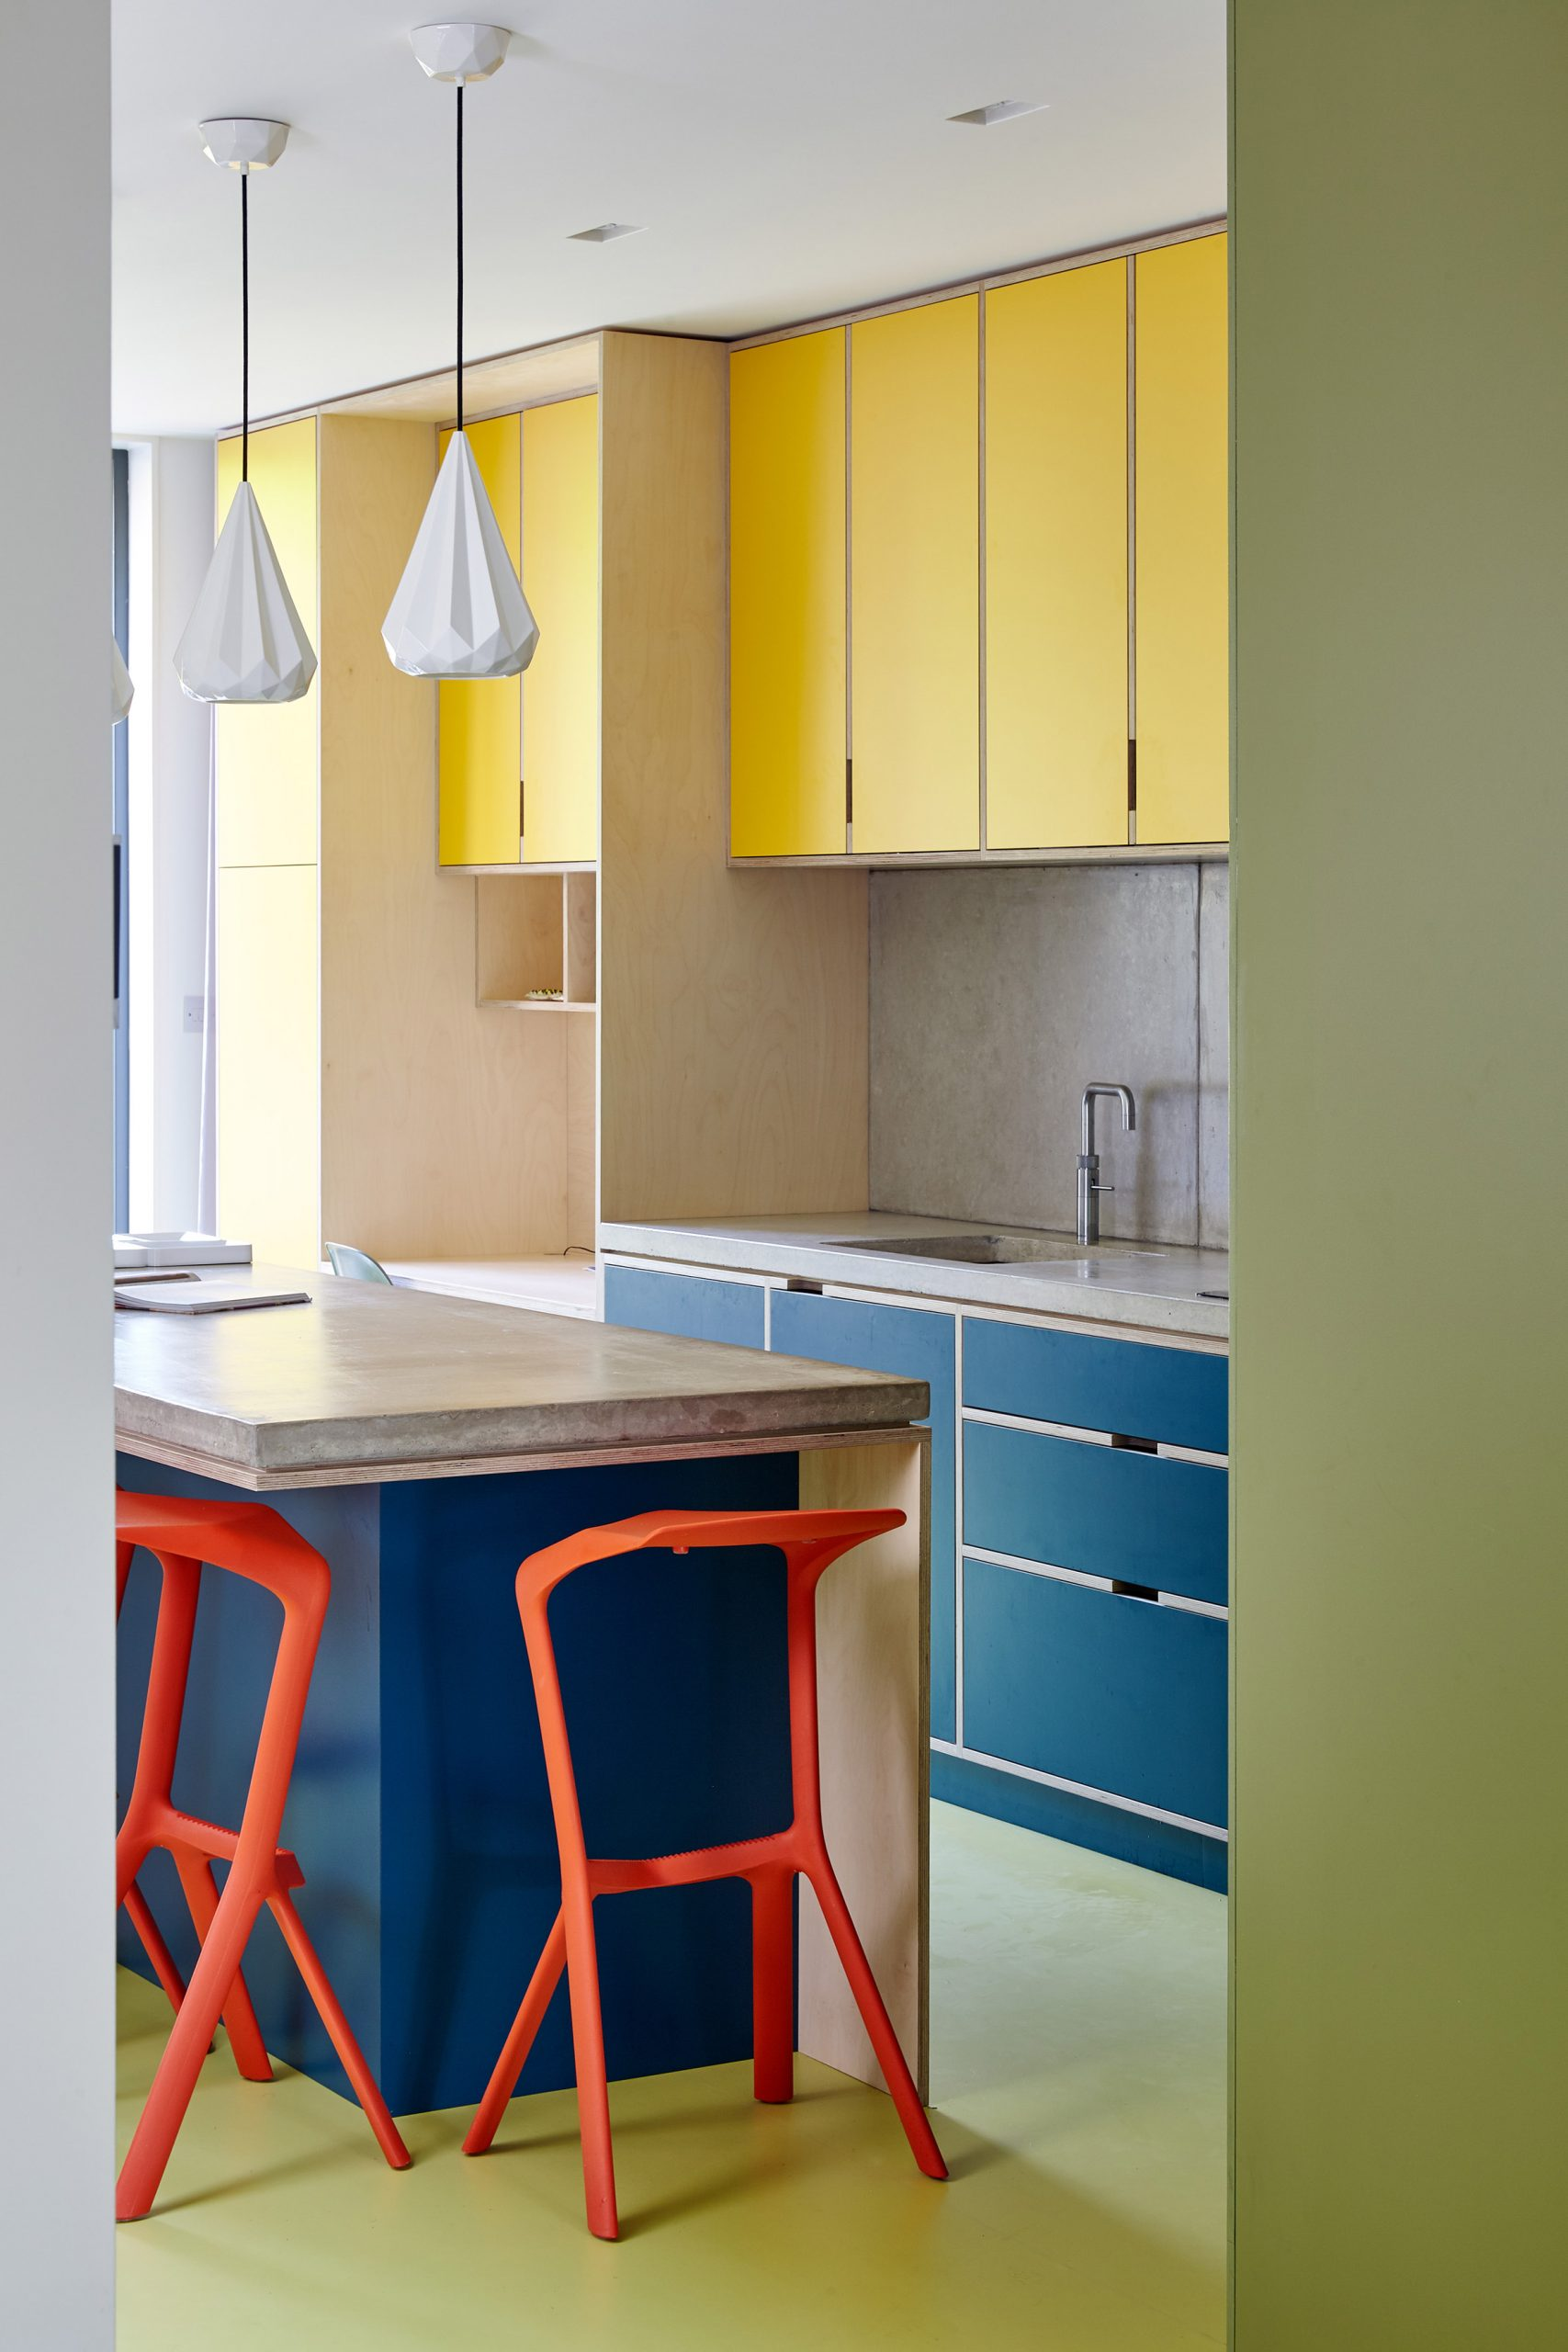 Interiors which use colour theory can adopt colour-blocking